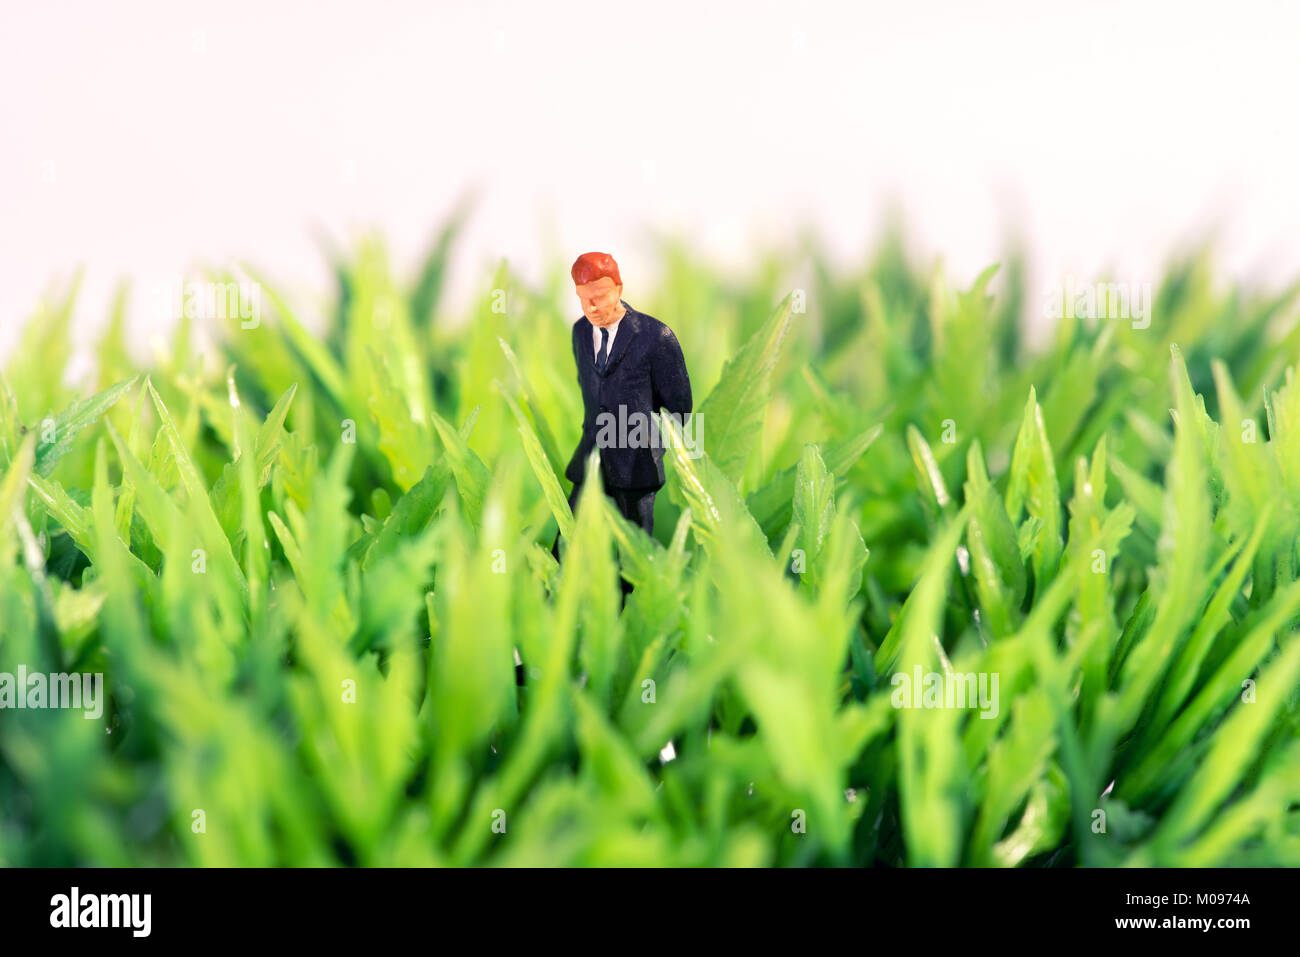 Miniature figure of a businessman standing in green grass thinking looking for inspiration and ideas - Stock Image